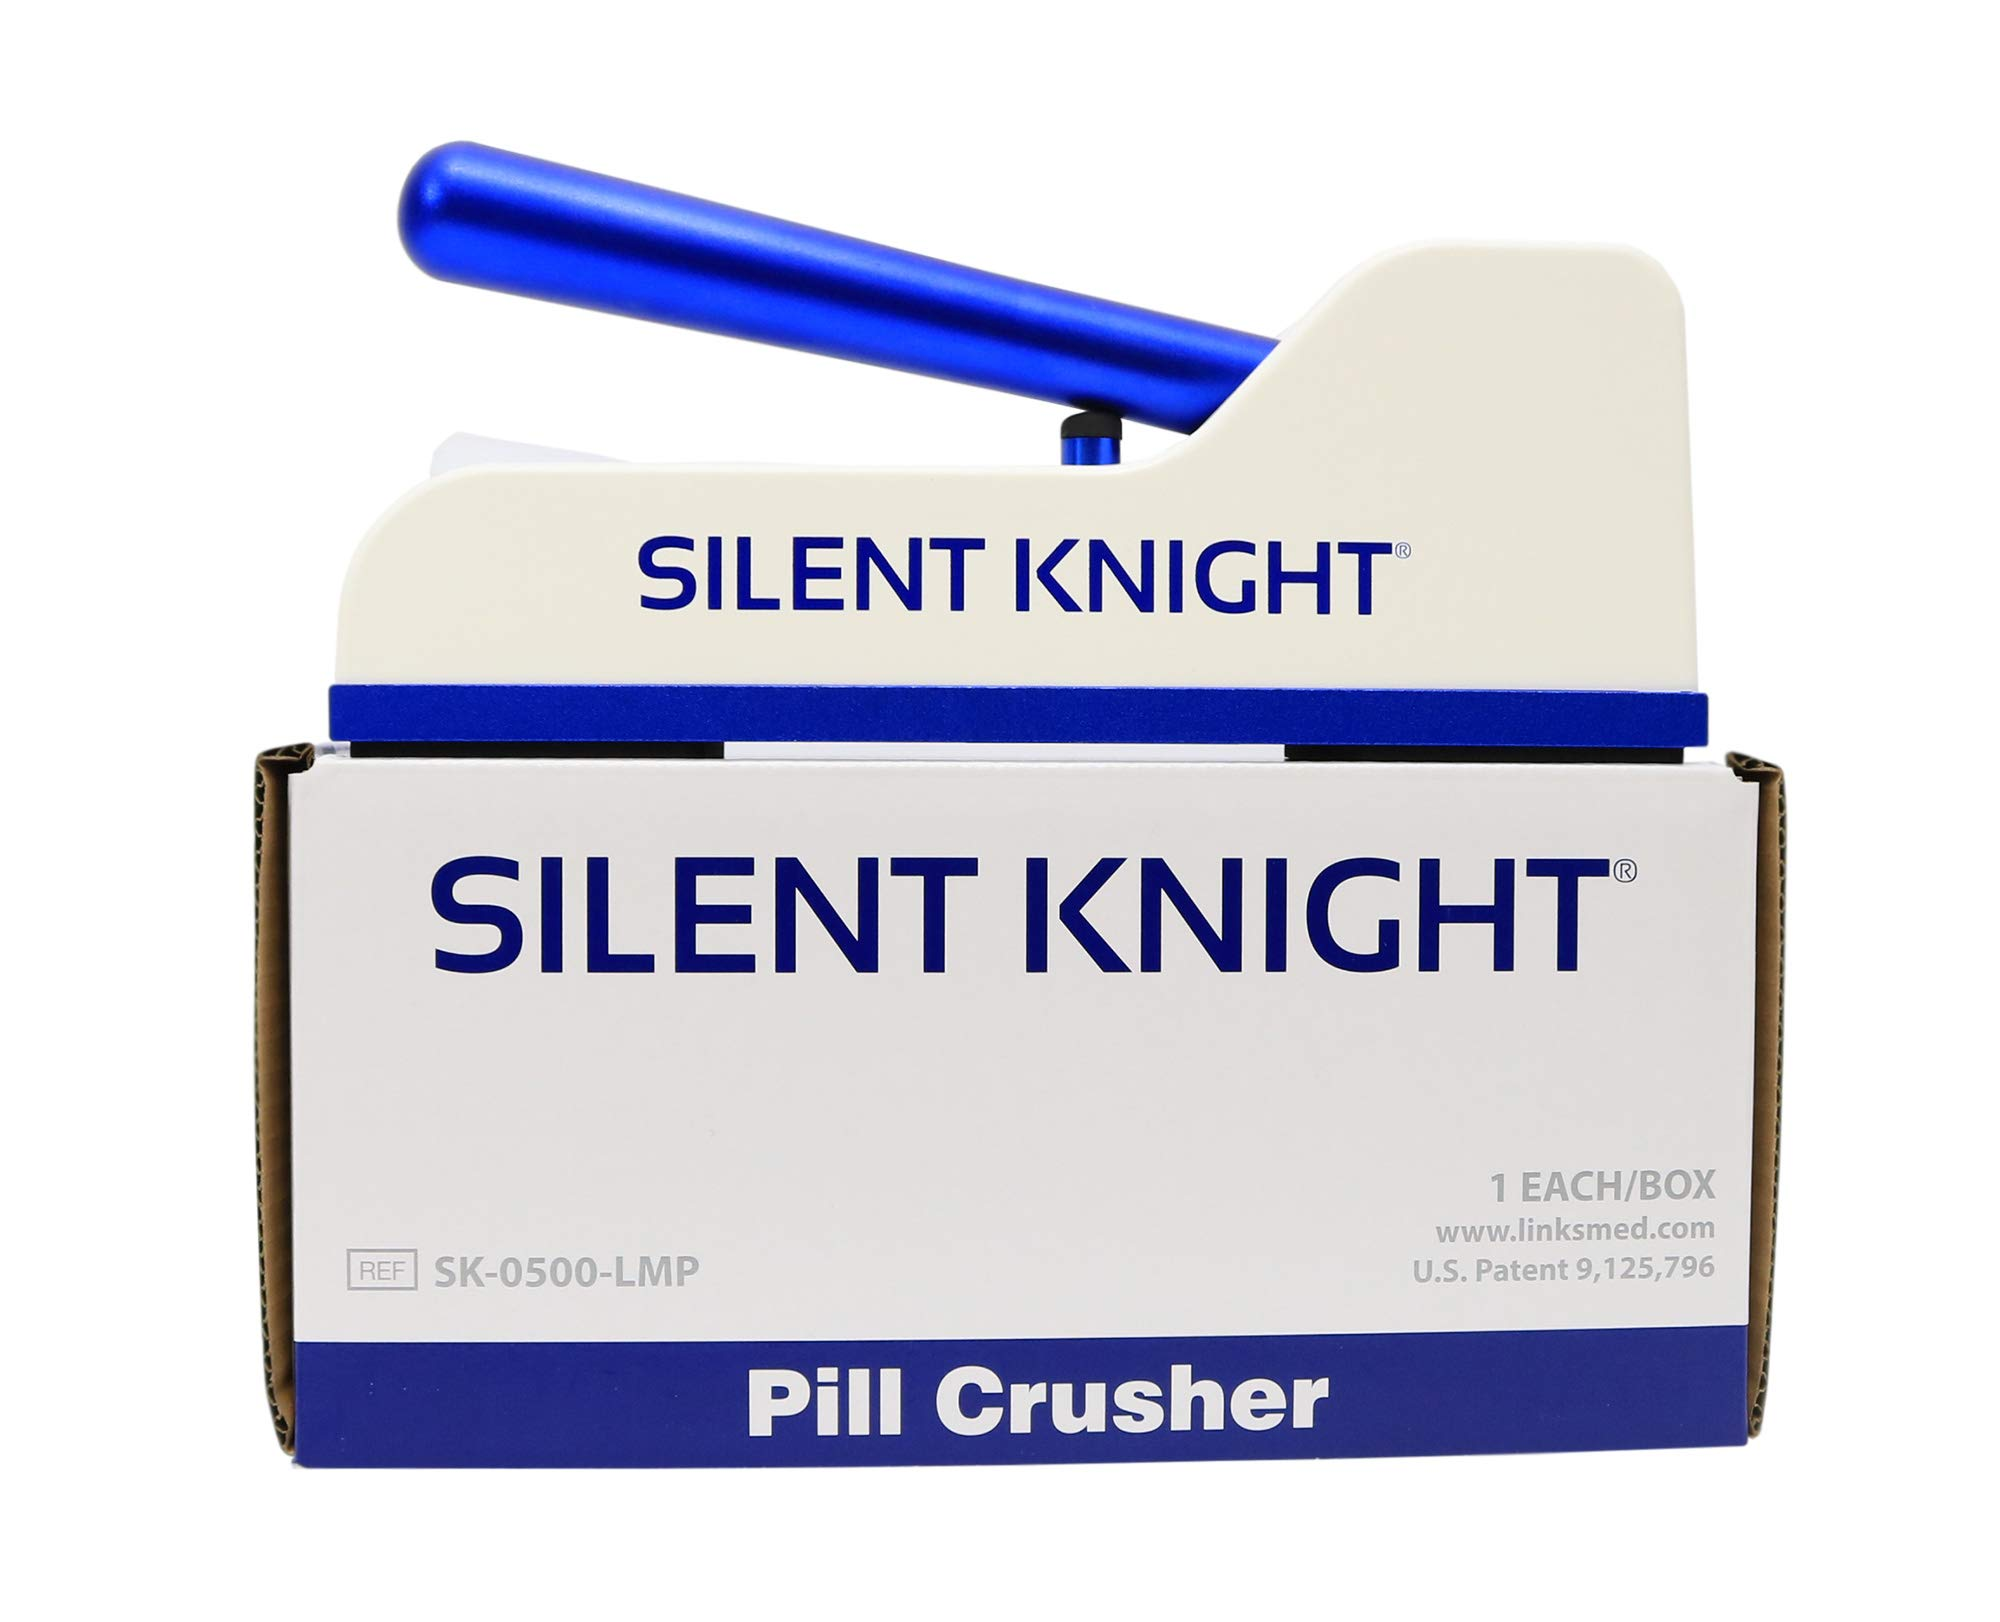 Silent Knight Pill Crusher by LINKS MED